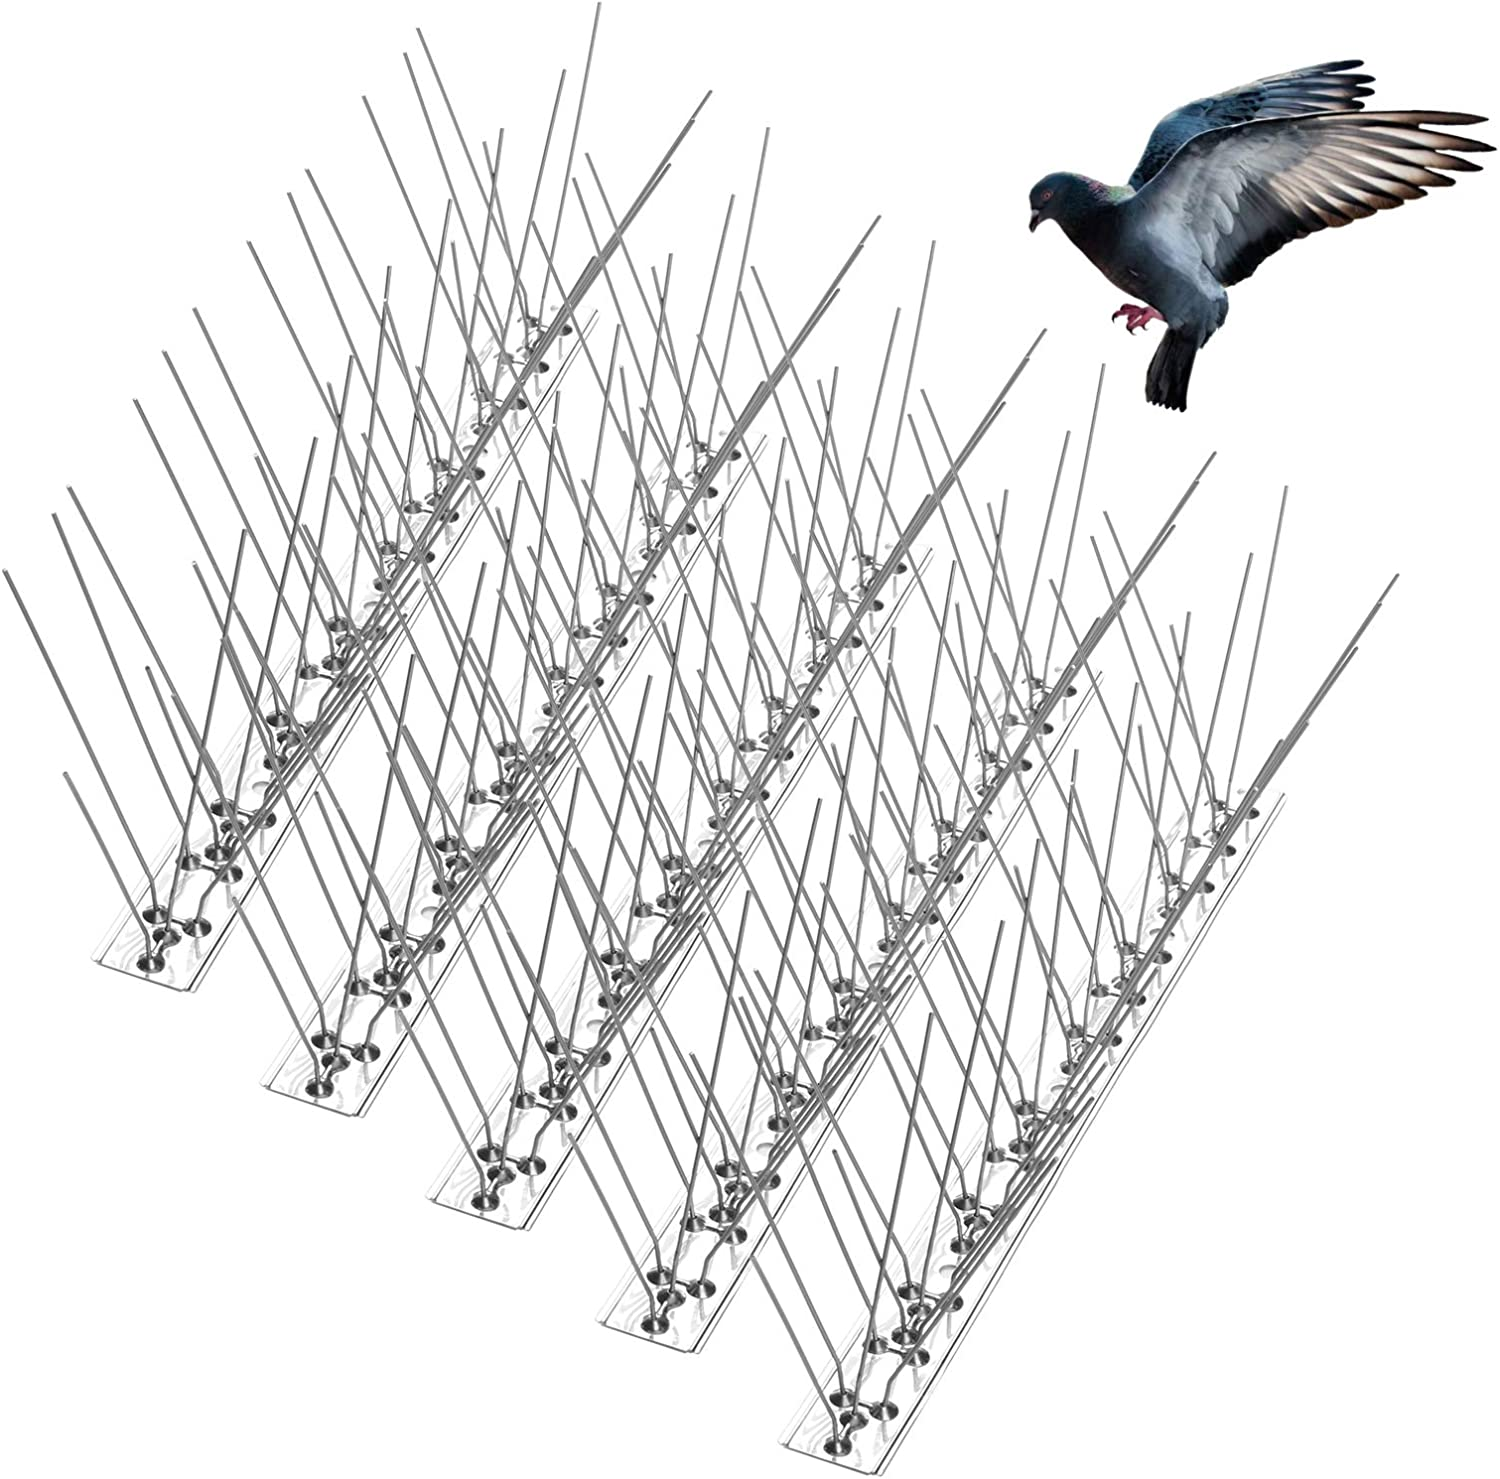 Stainless Steel  Pigeons Spikes Scares for Roofs,Chimneys,Towers